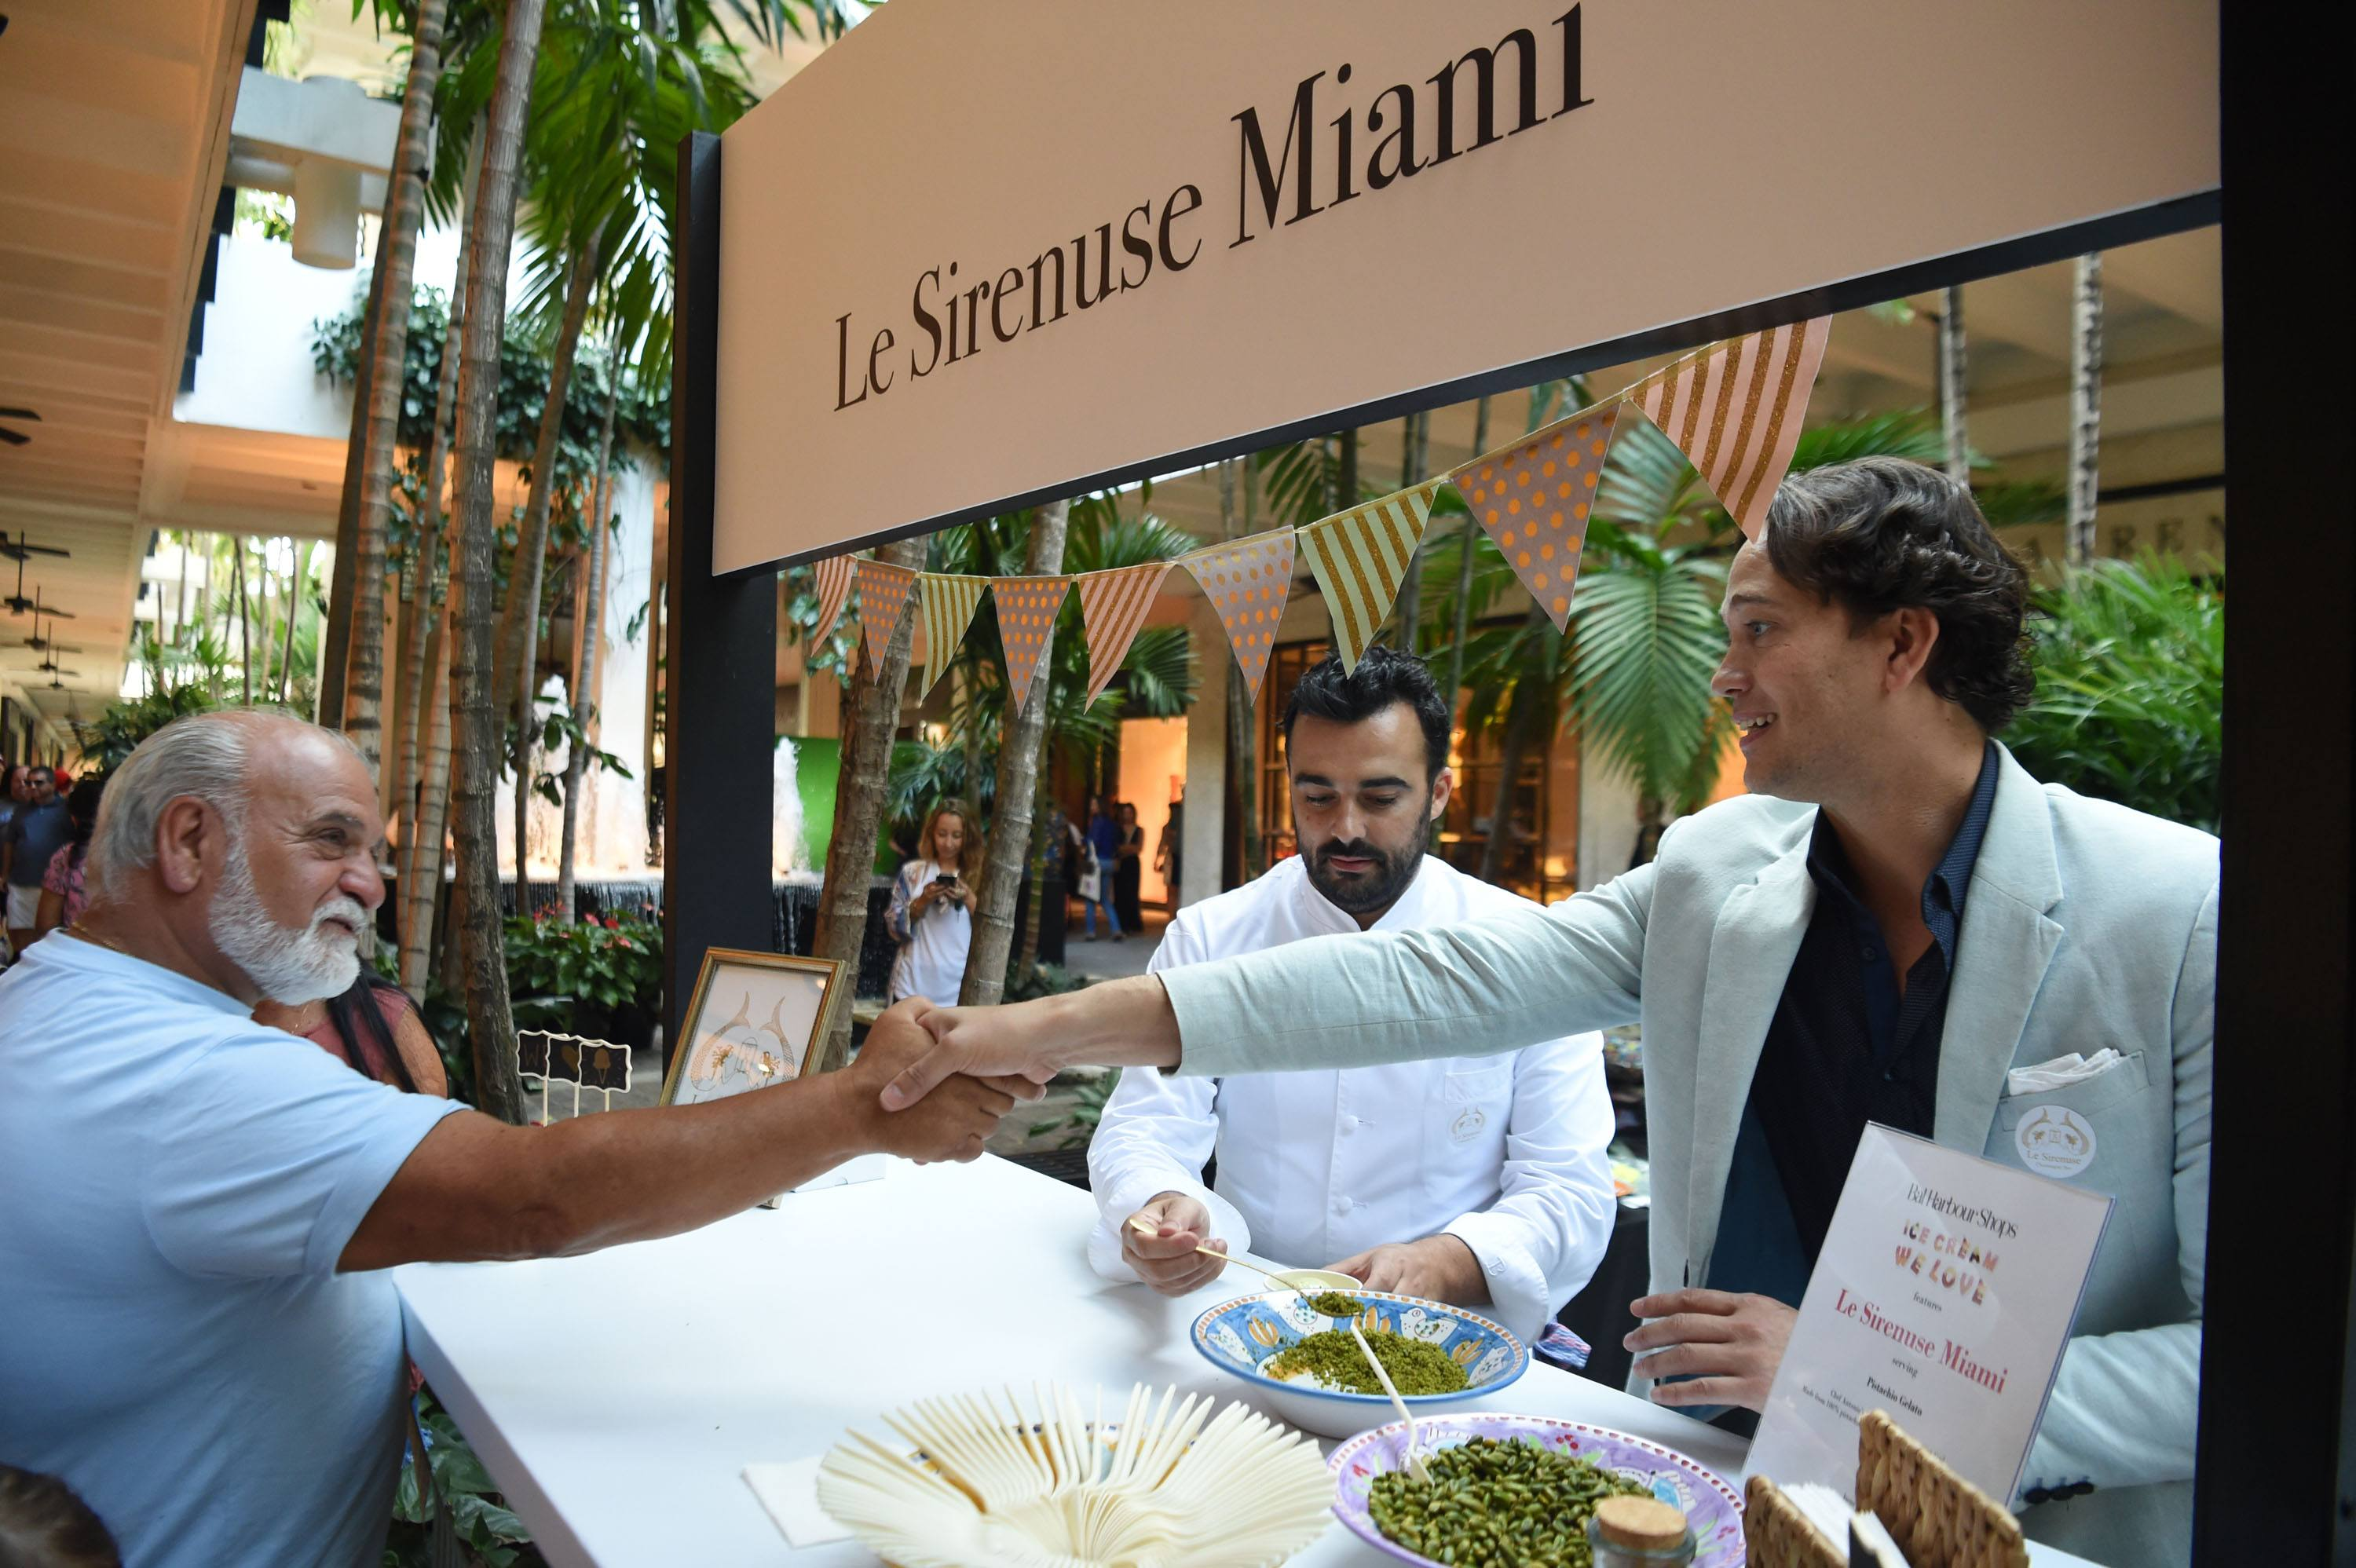 Le Sirenuse Miami served their guests their signature pistachio gelato topped with pistachio dust